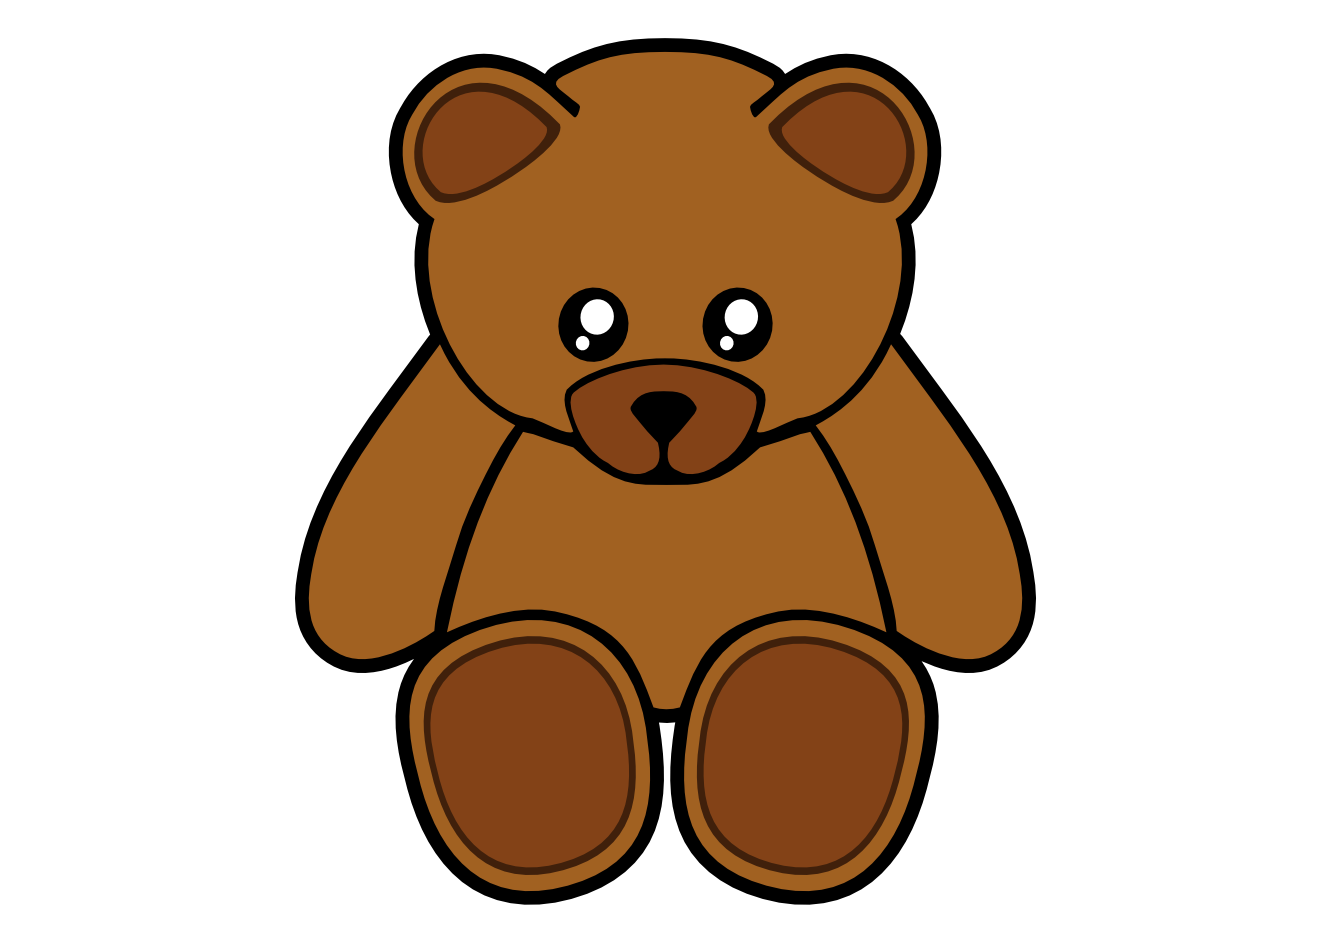 Clipart beach bear. Teddy images clipartmonk free